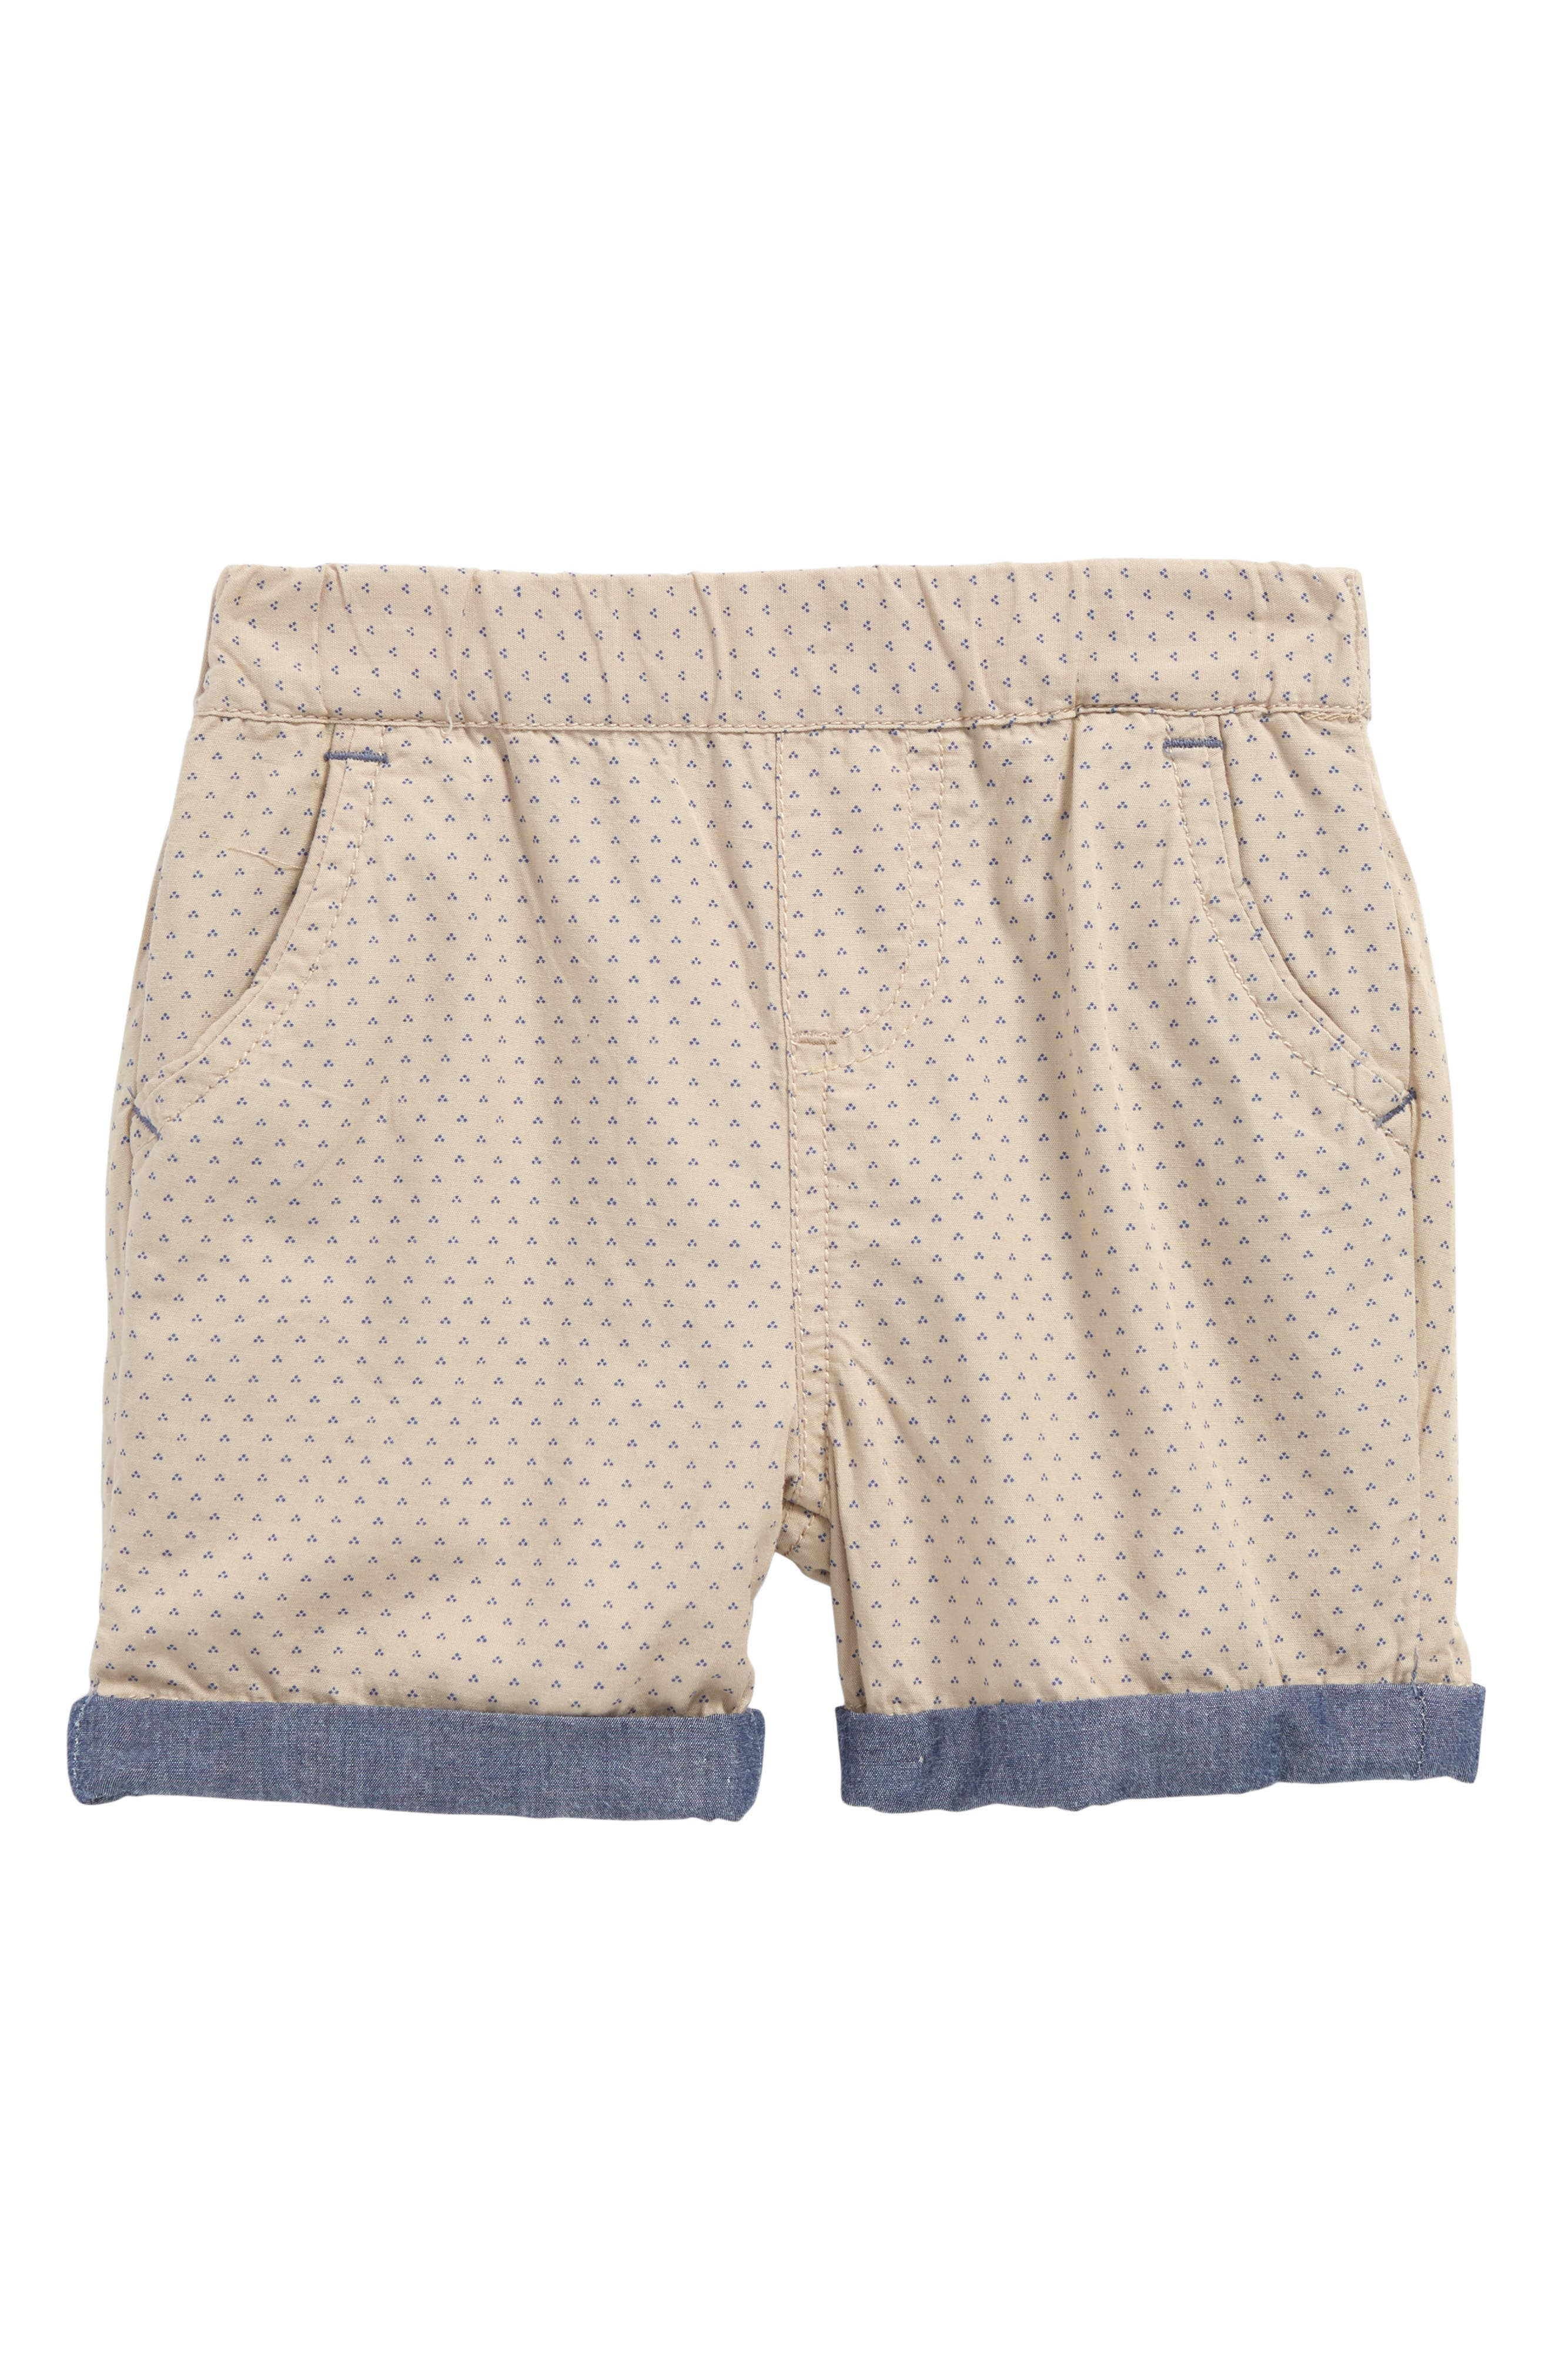 Drew Shorts,                         Main,                         color, Khaki